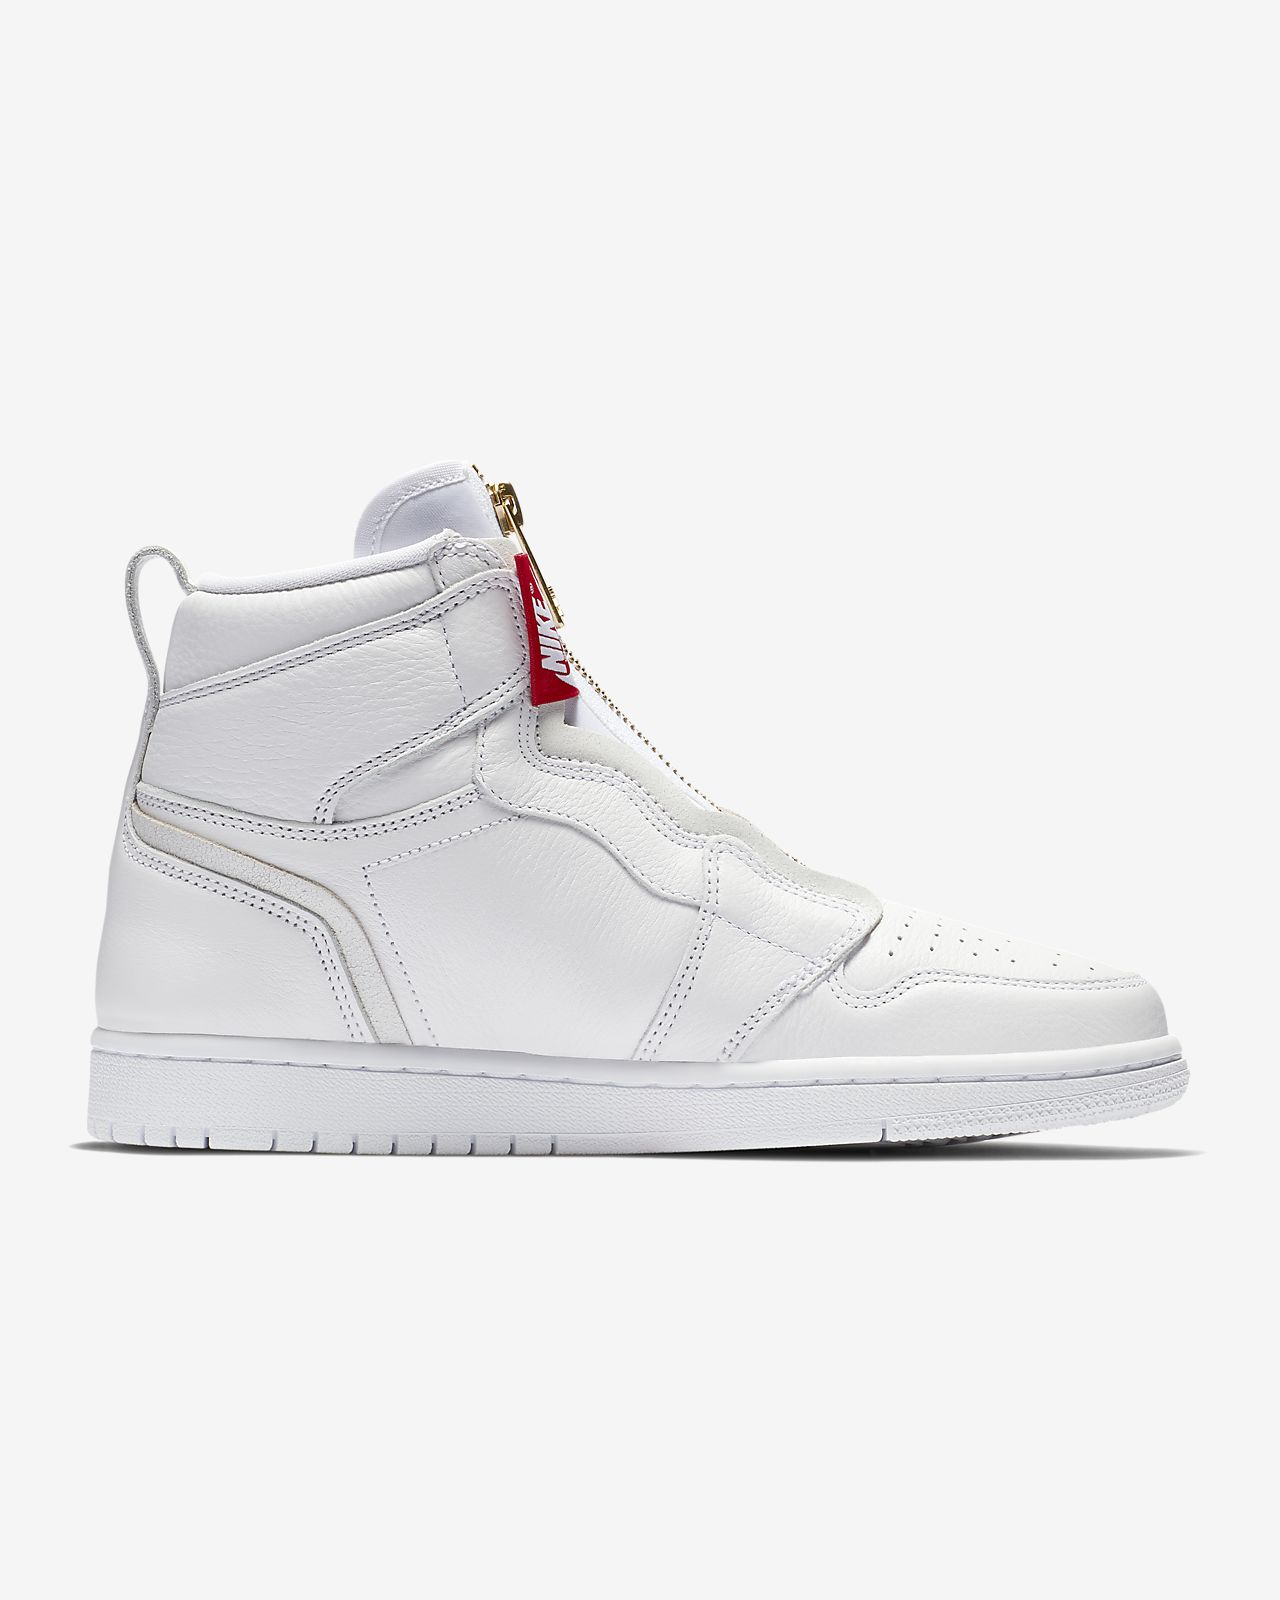 Nike Jordan 1 High Zip sneakers D3n7t